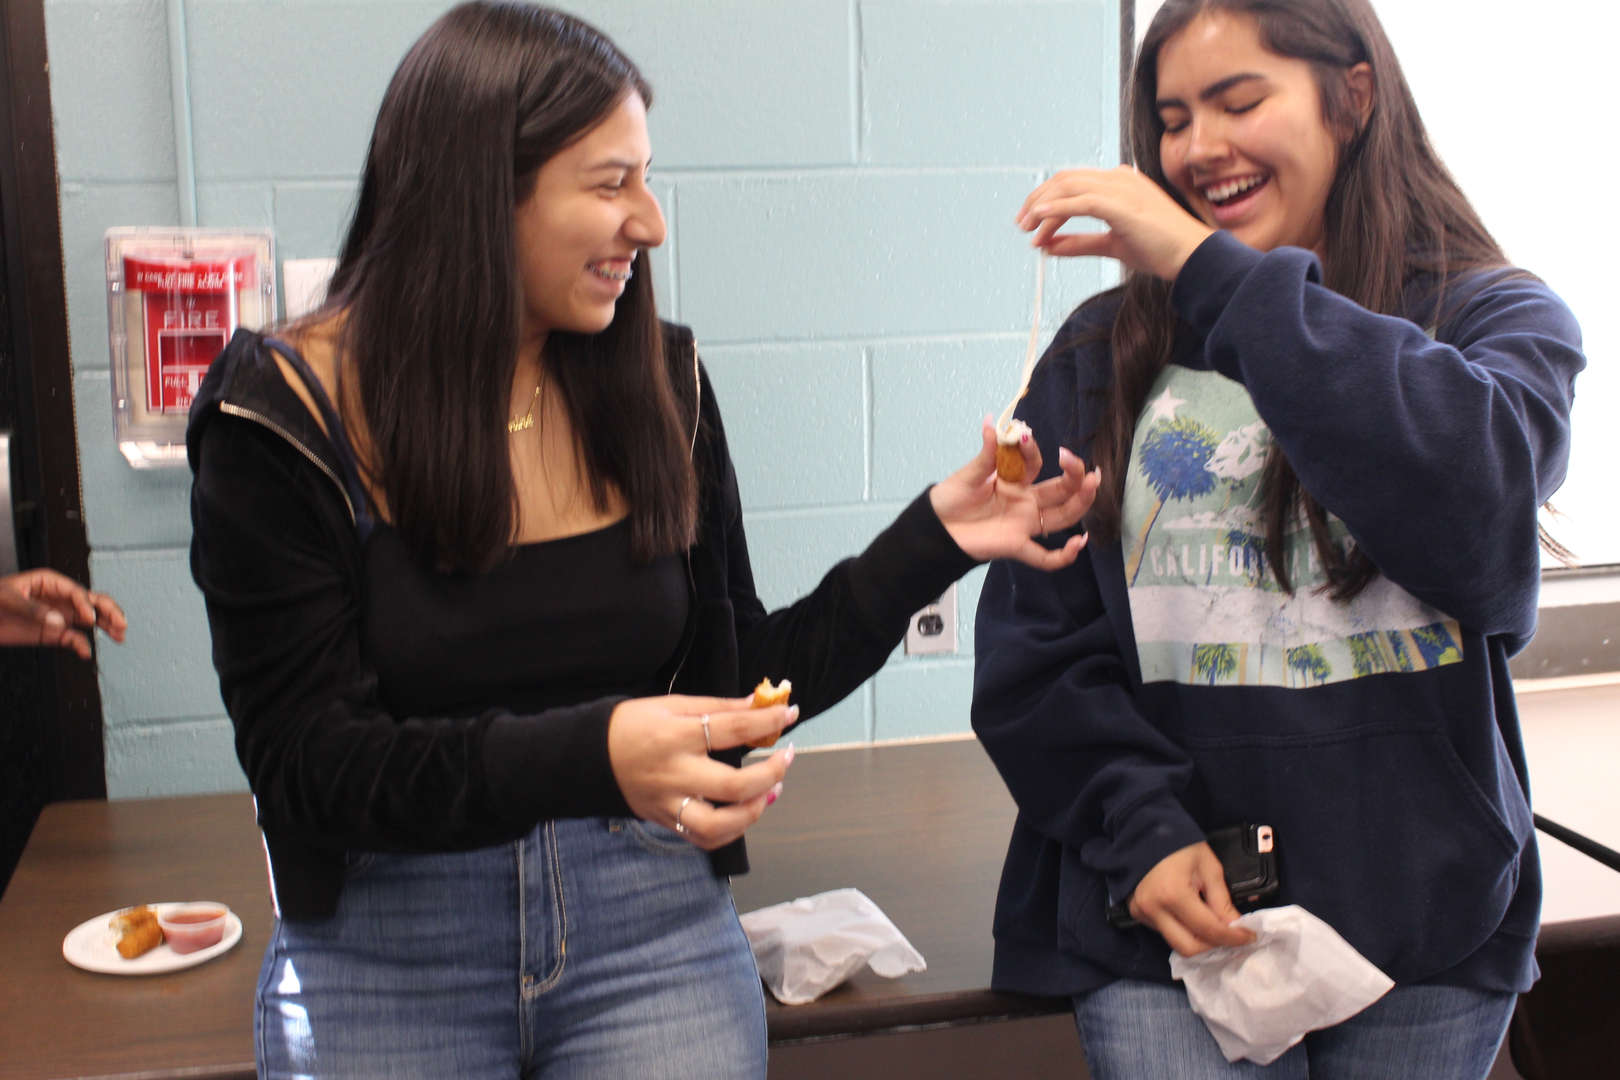 Students enjoy eating mozzarella sticks